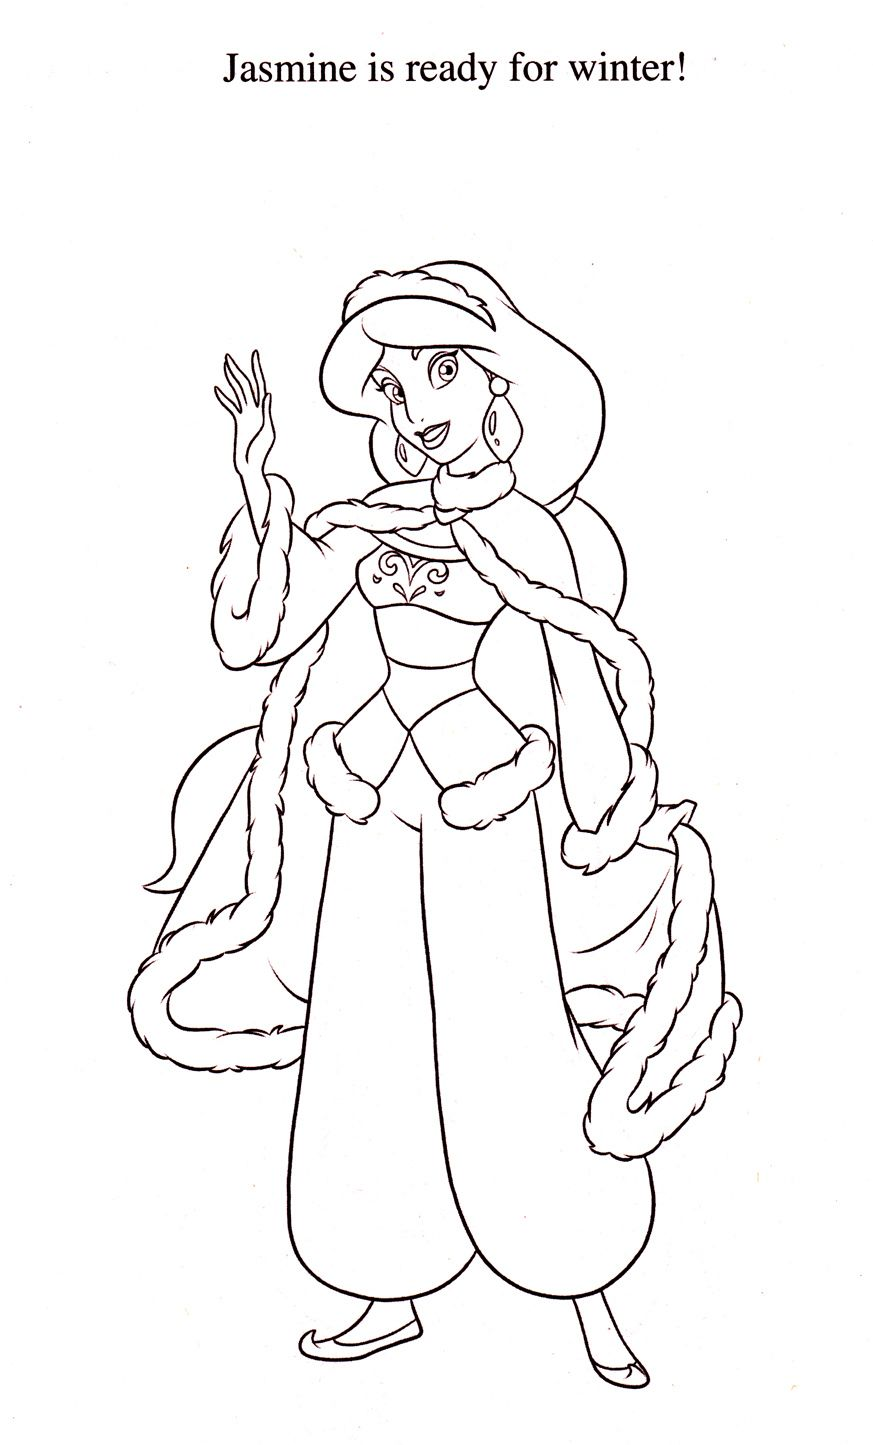 Jasmine Christmas Coloring Pages With Is Winter Ready Passo A